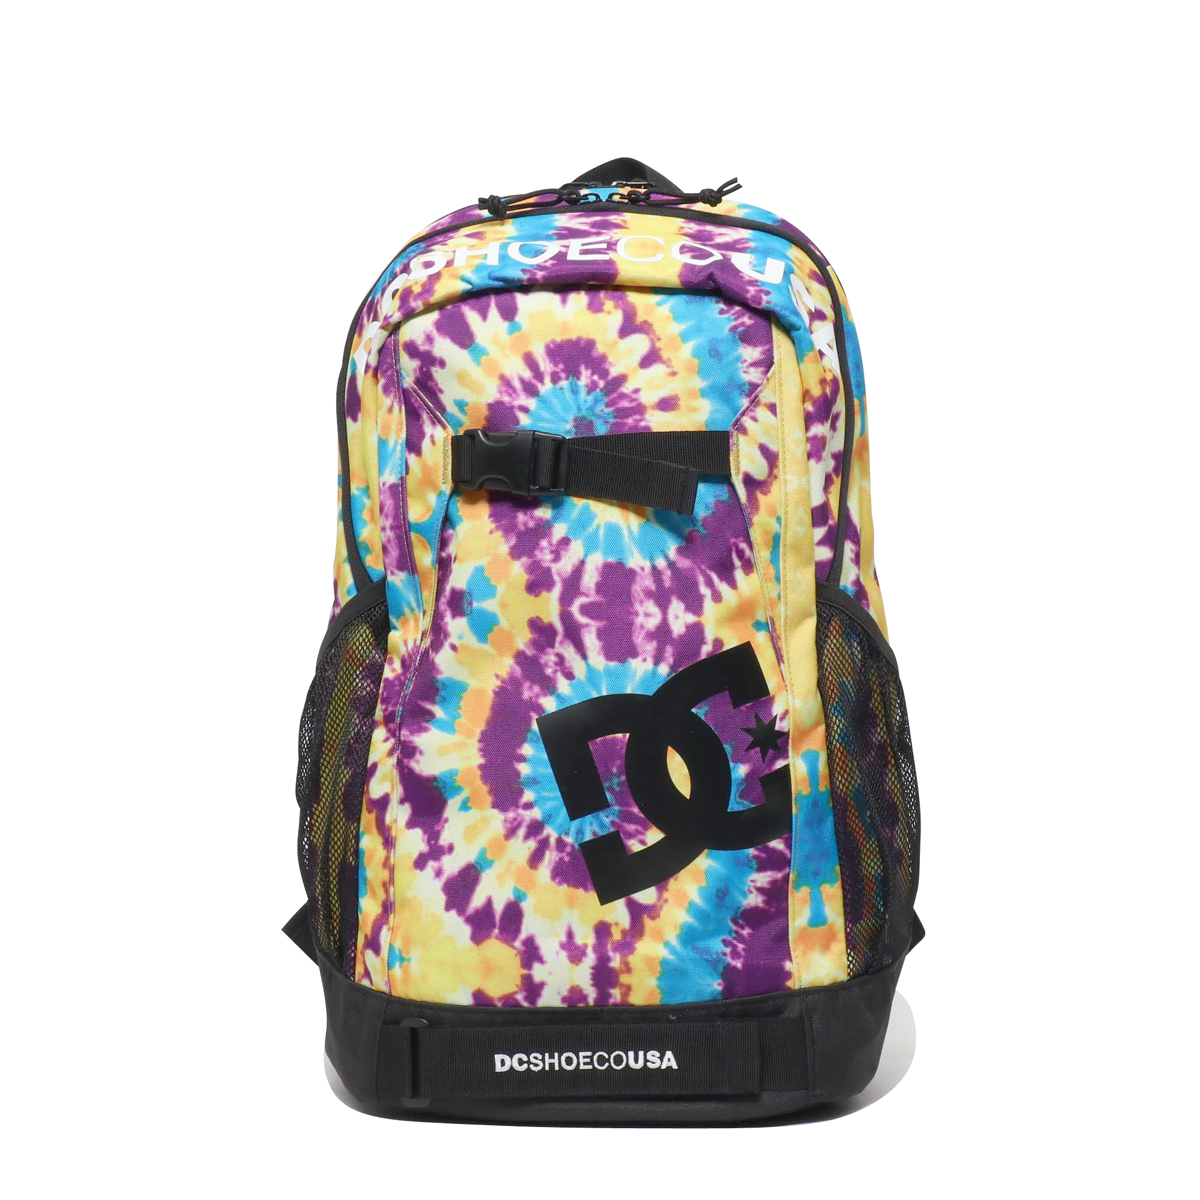 DC SHOES 19 WOLFBRED2 (ディーシーシューズ 19 ウルフブレッド 2)TIEDYE【メンズ バックパック】19SS-I